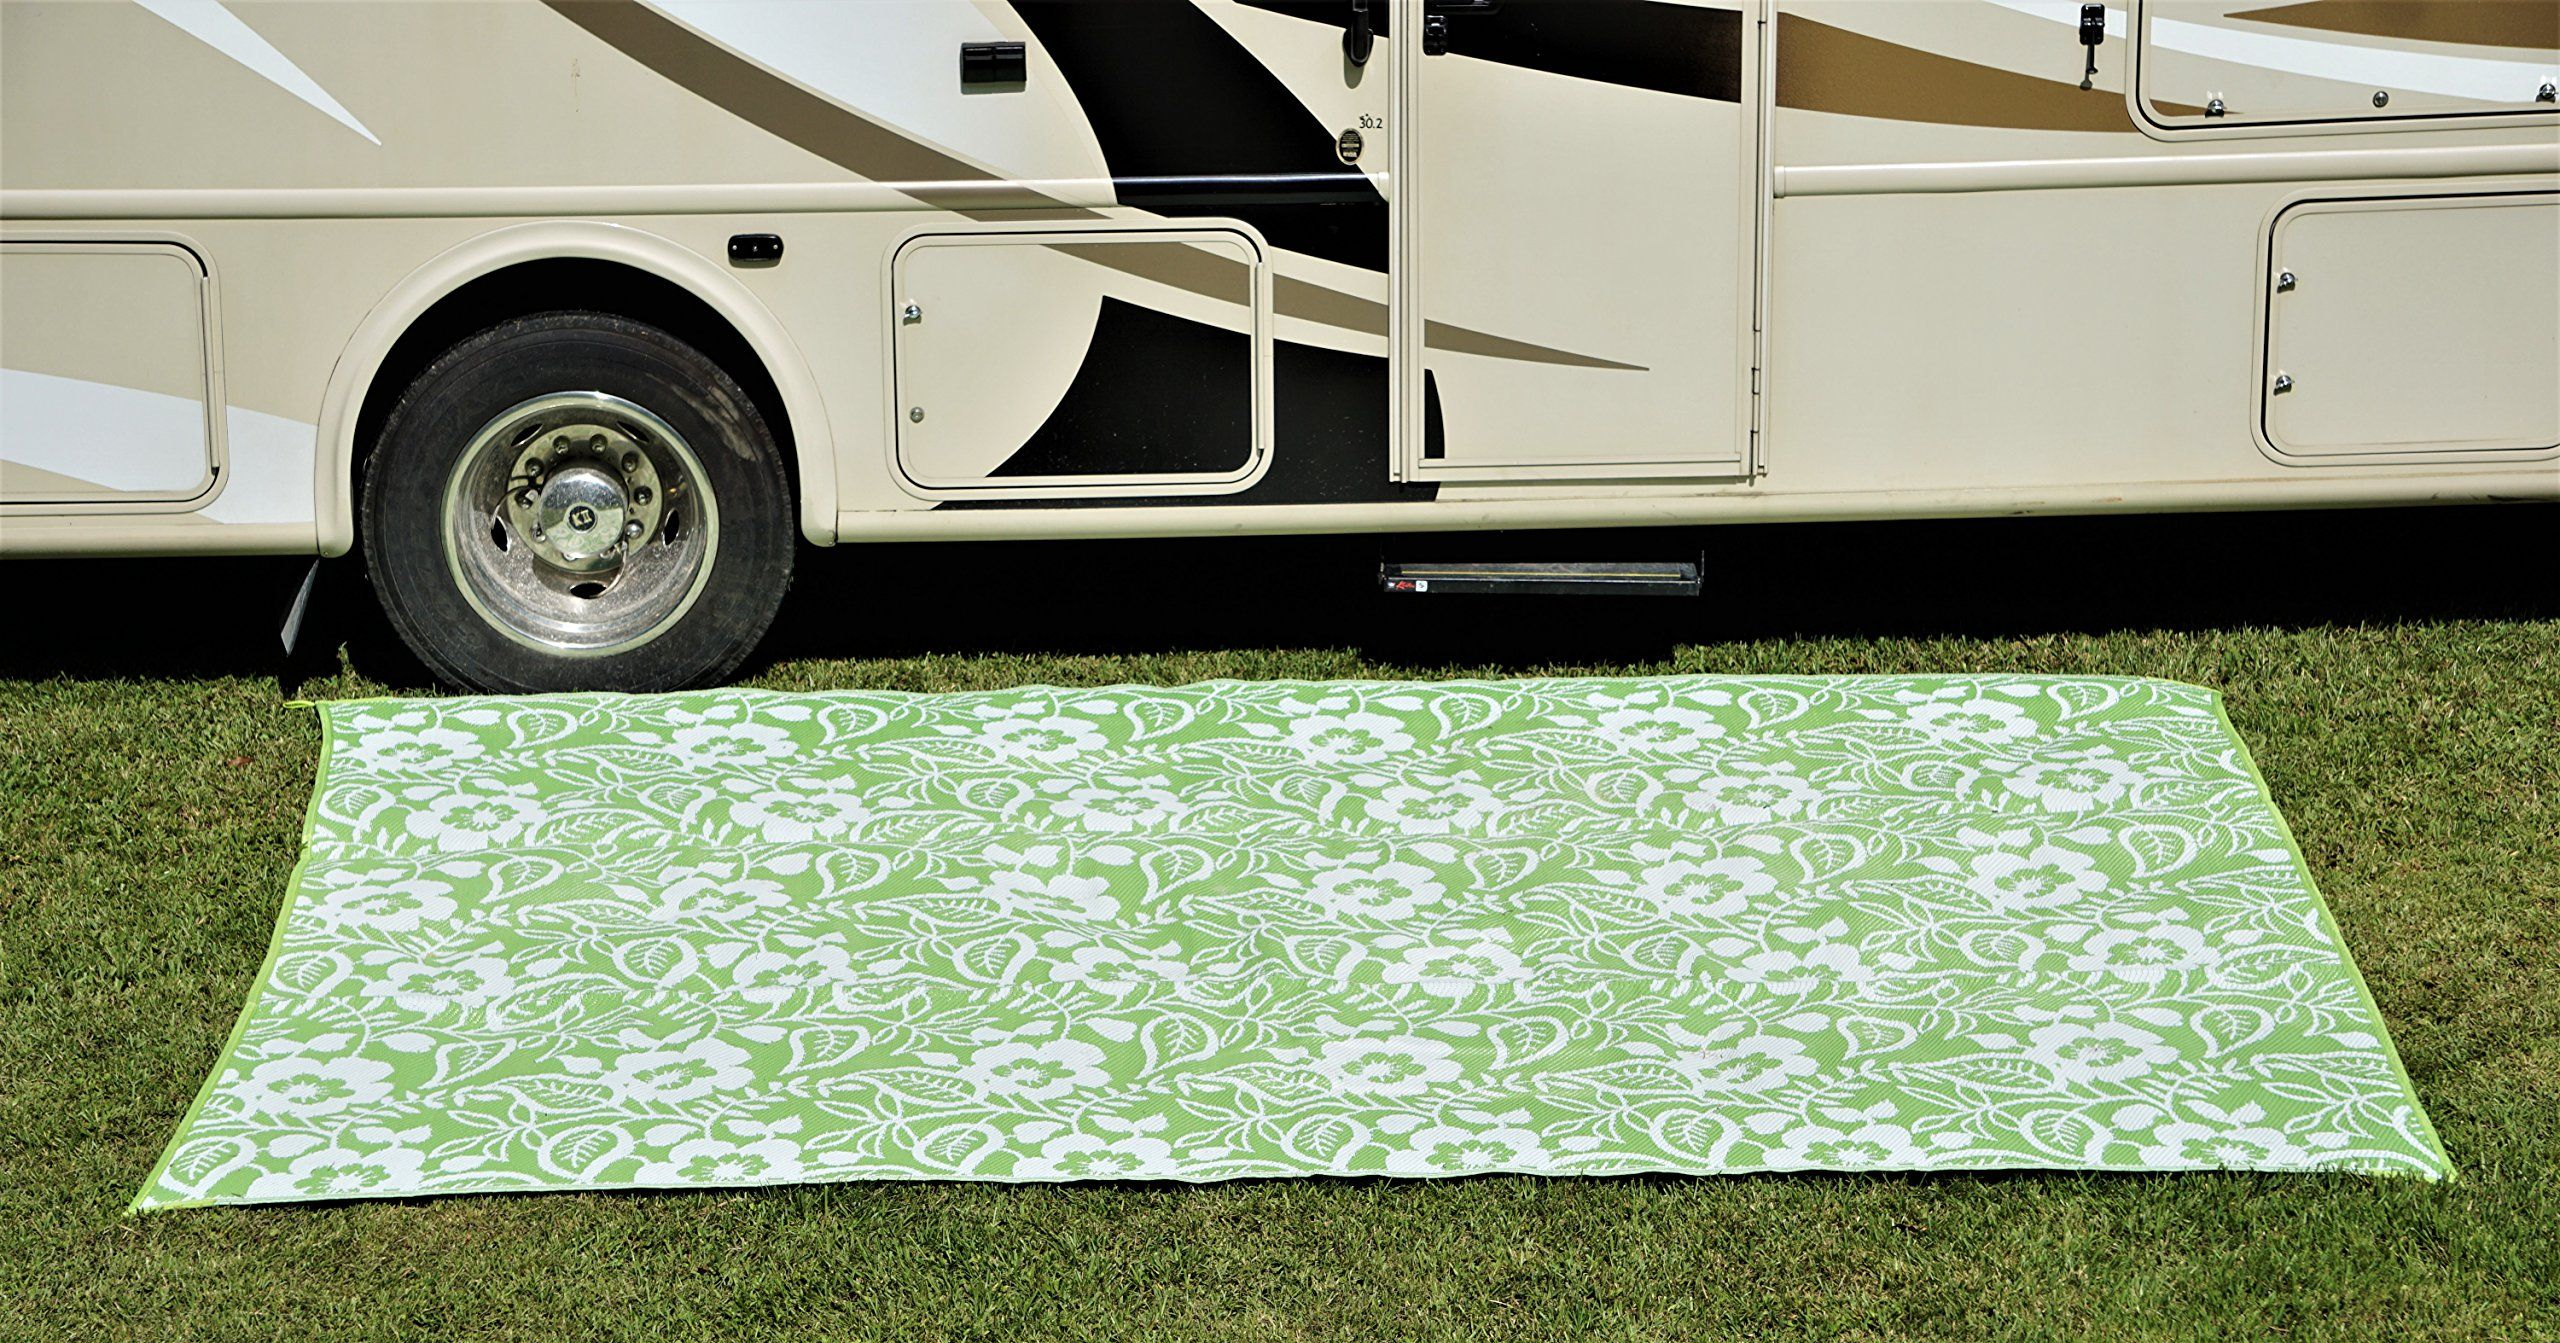 Rv Patio Mat Outdoor Rug For Patio 9x12 Camping Rug Large